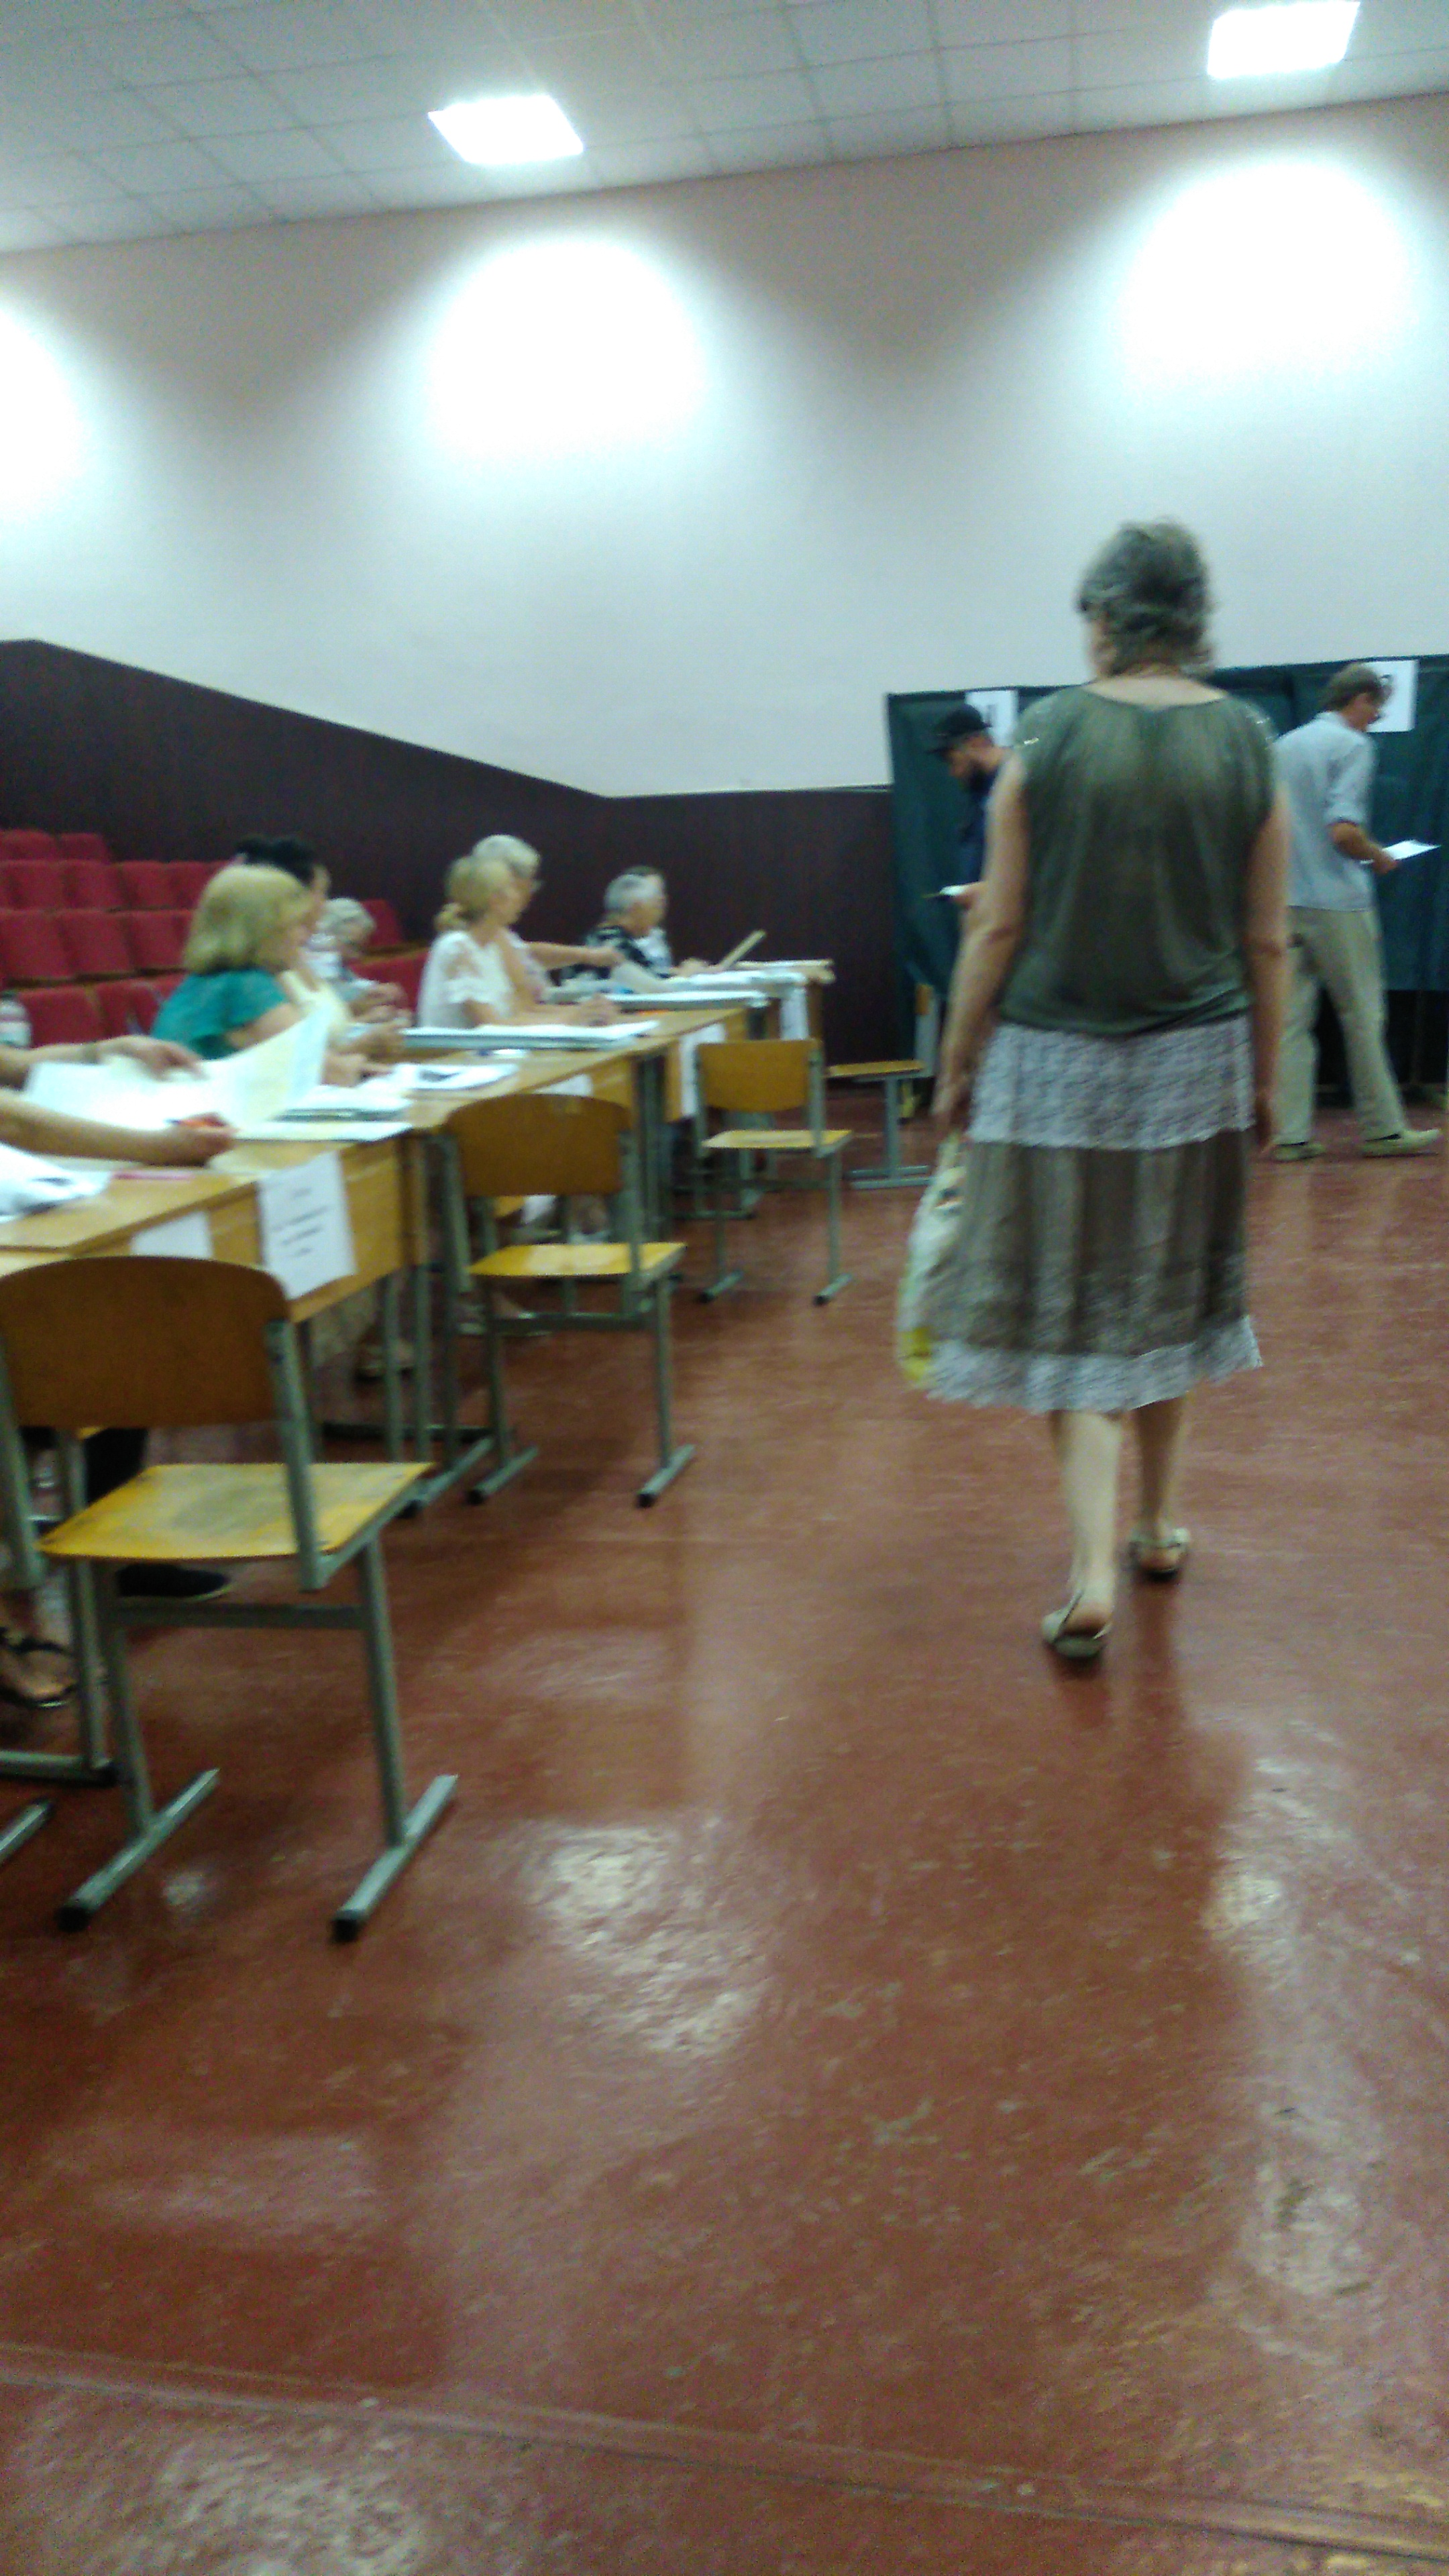 Voting was orderly in Odesa - MJ Independent Photo